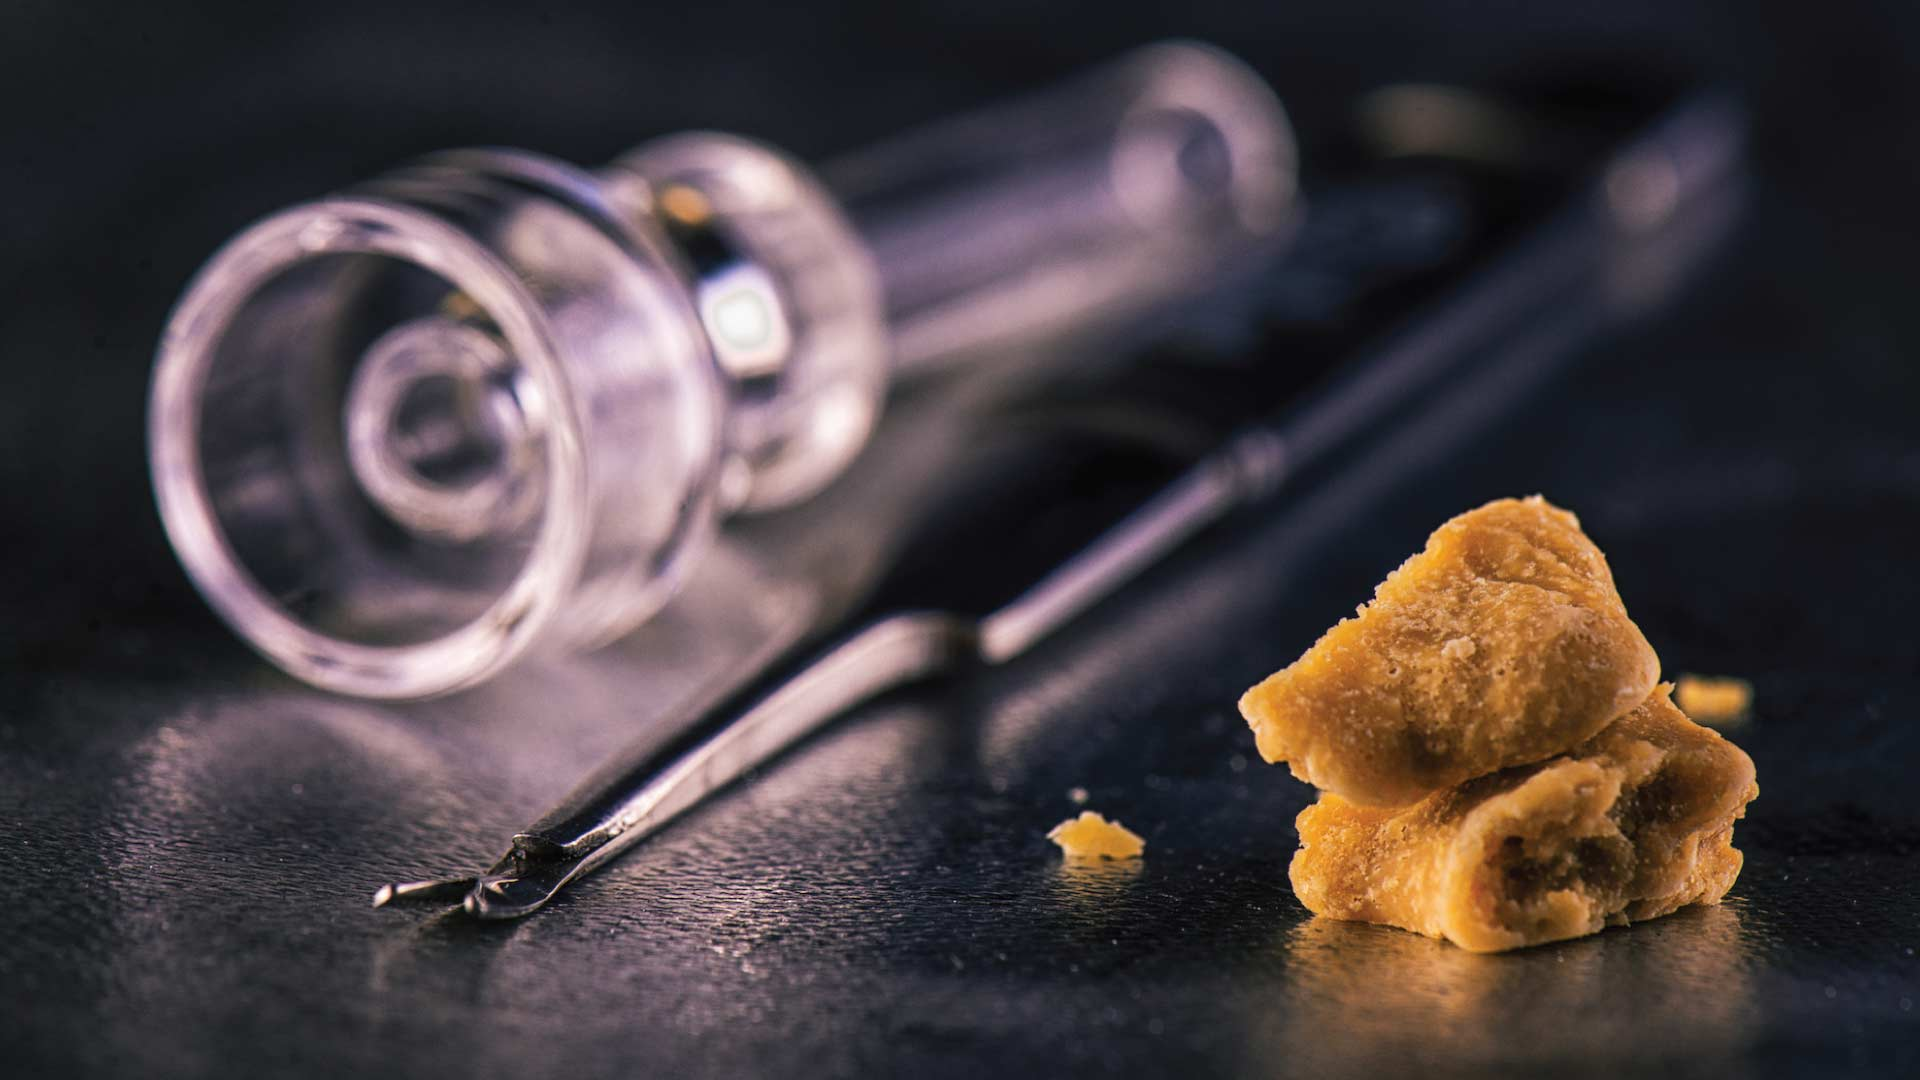 Dabs aren't for first time smokers